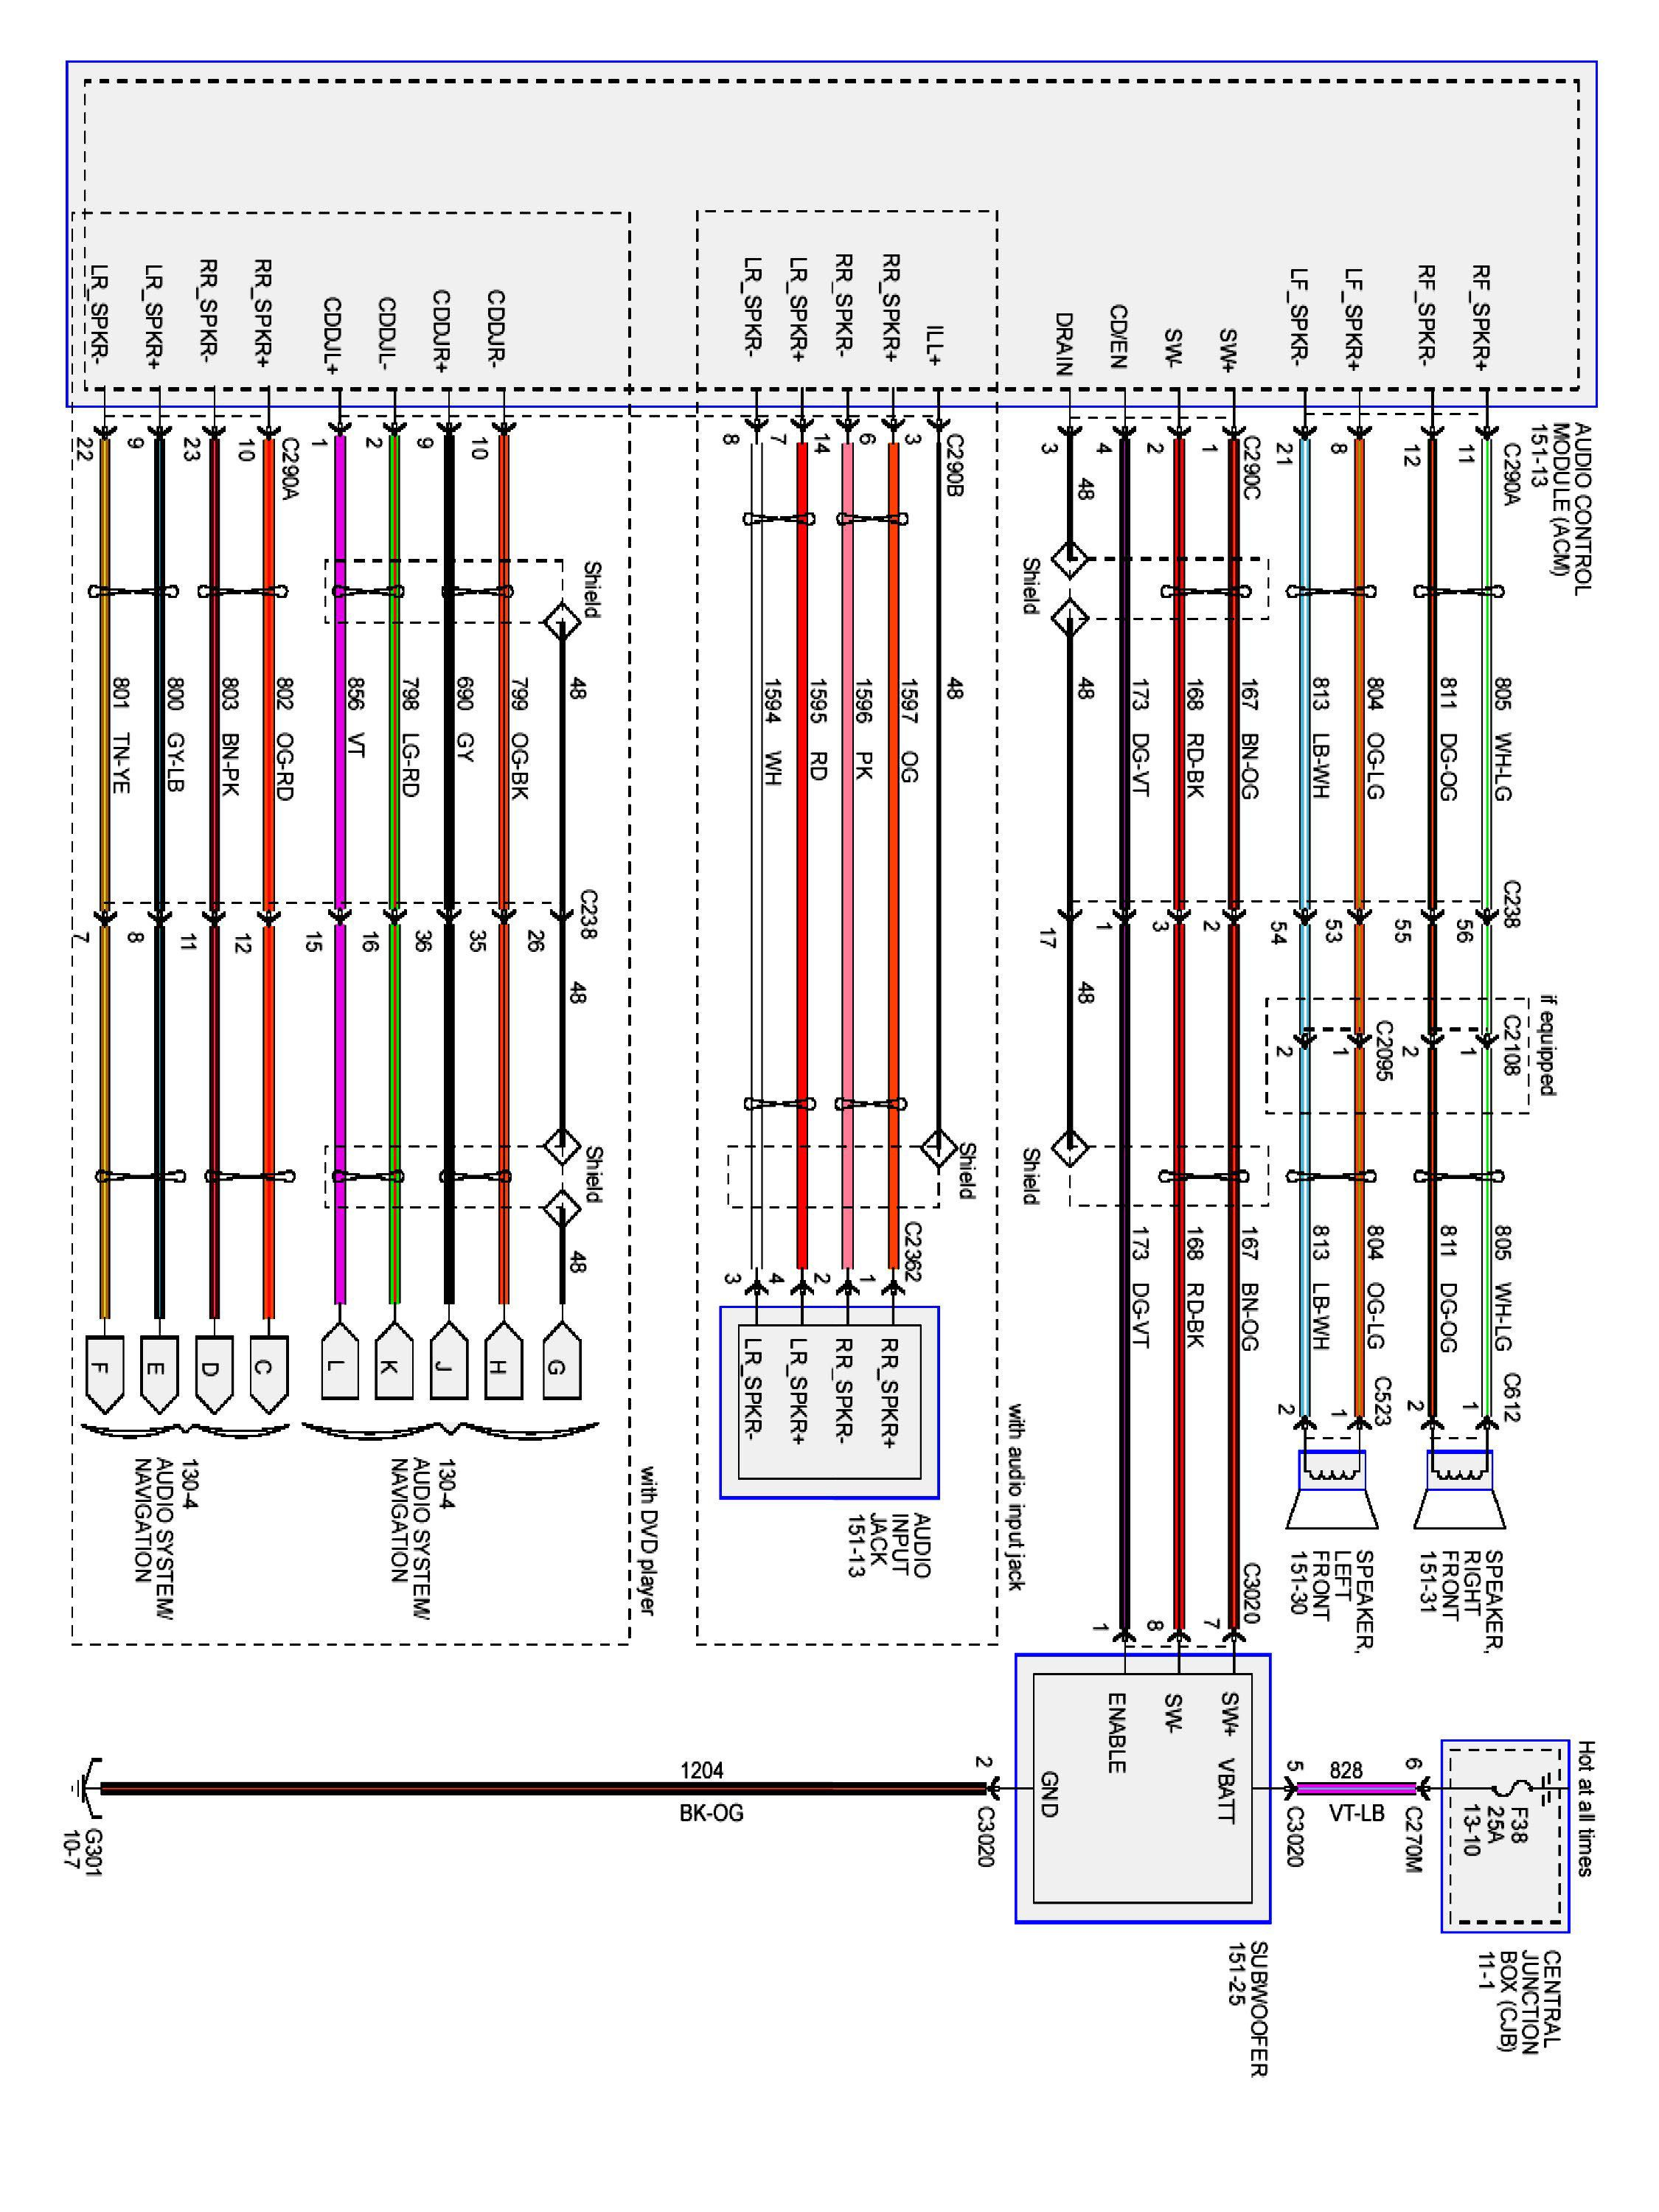 44 New 2004 Ford F150 Radio Wiring Diagram Ford Expedition Ford Ranger 2004 Ford F150